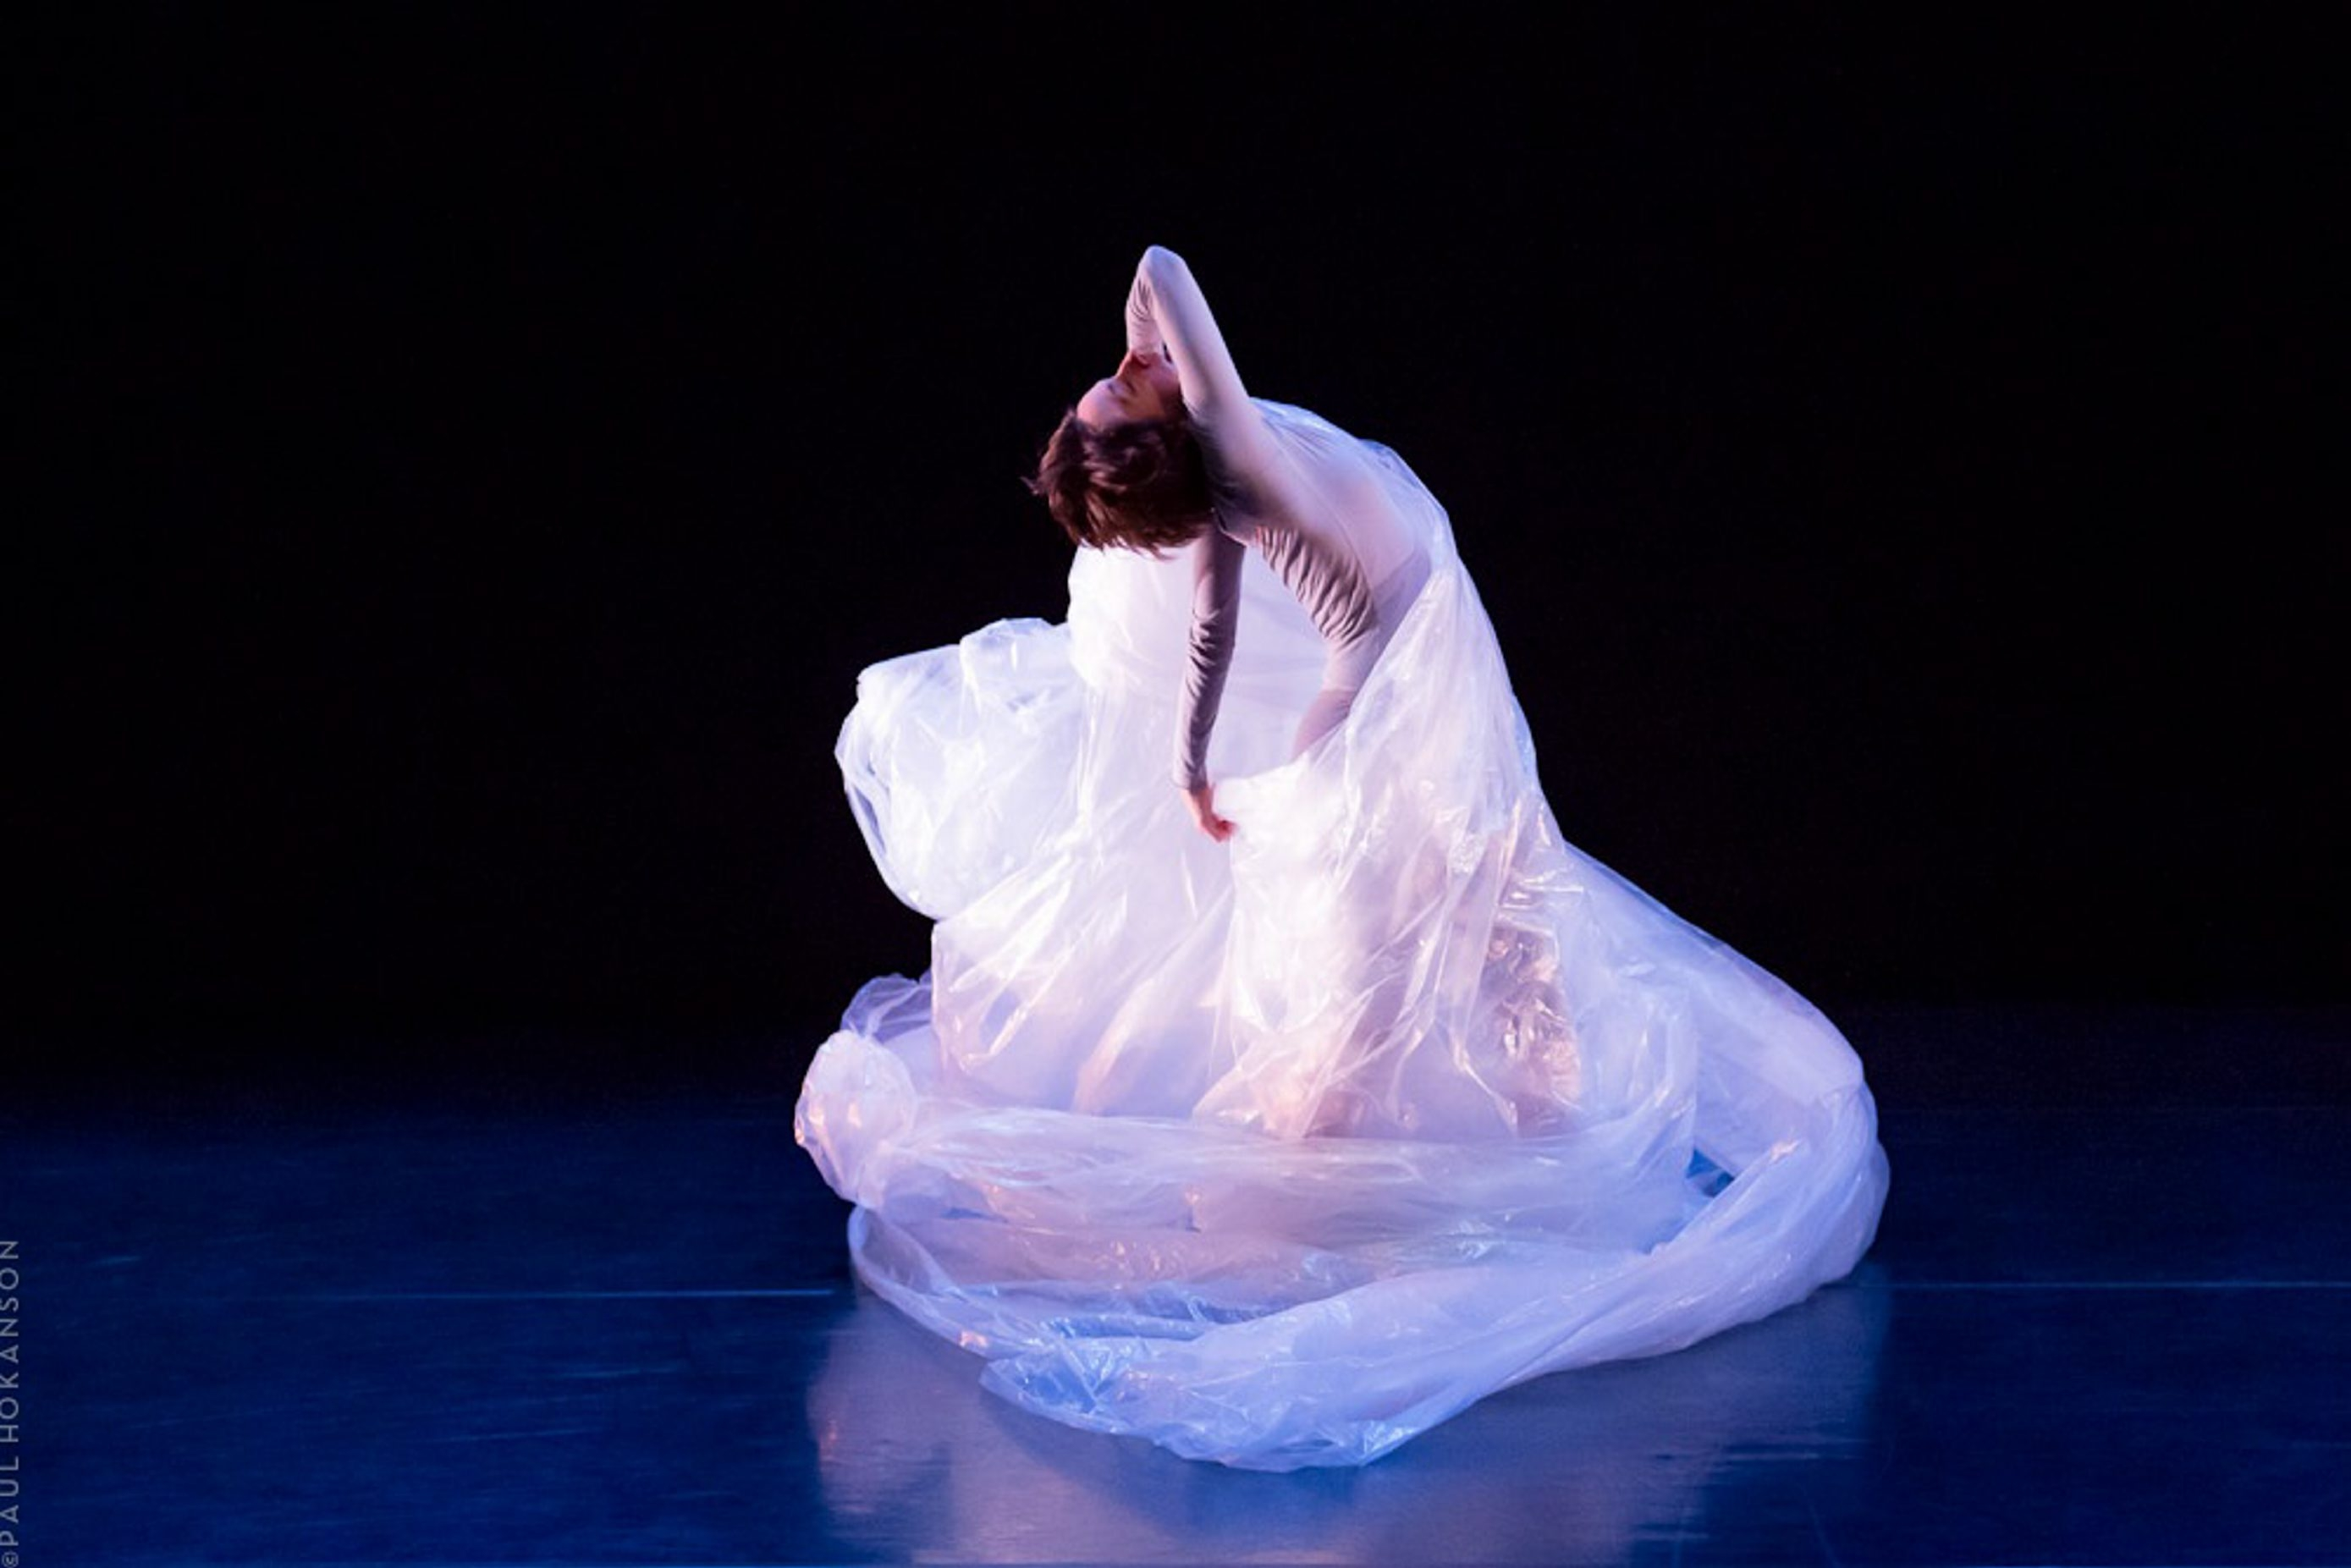 Dancer Melanie Aceto performs 'In Motion' at the University at Buffalo Center for the Arts on May 5, 2012. She will also appear during Hallwalls Artists and Models fundraiser on Sept. 29, 2012 in the Pierce Arrow Building.